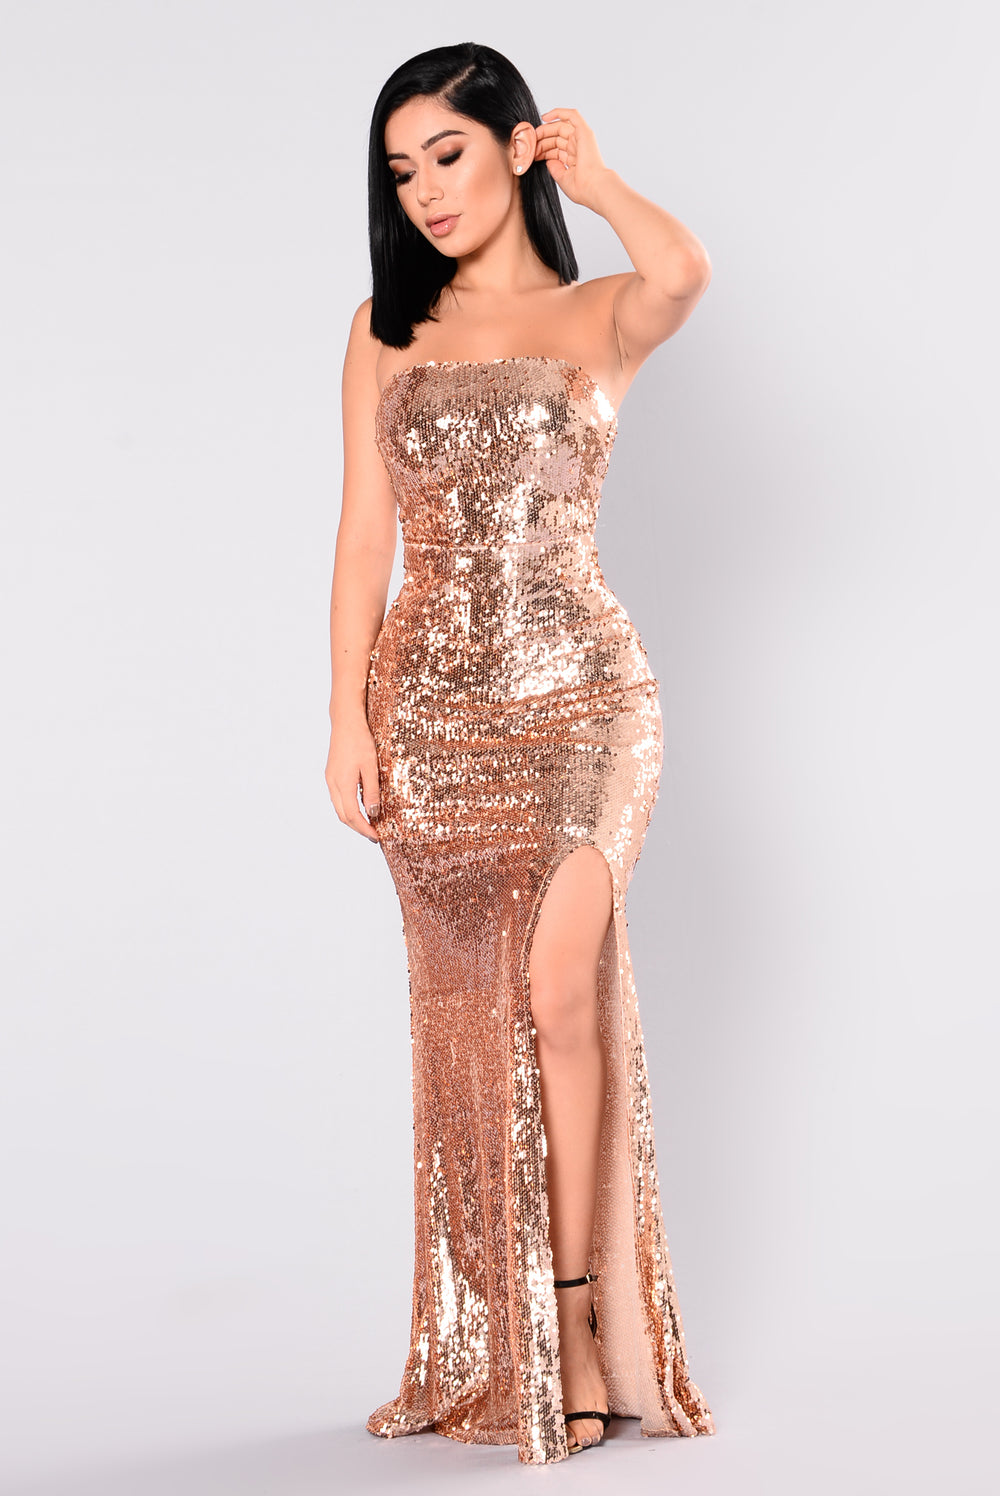 Make A Scene Sequin Dress - Rose Gold